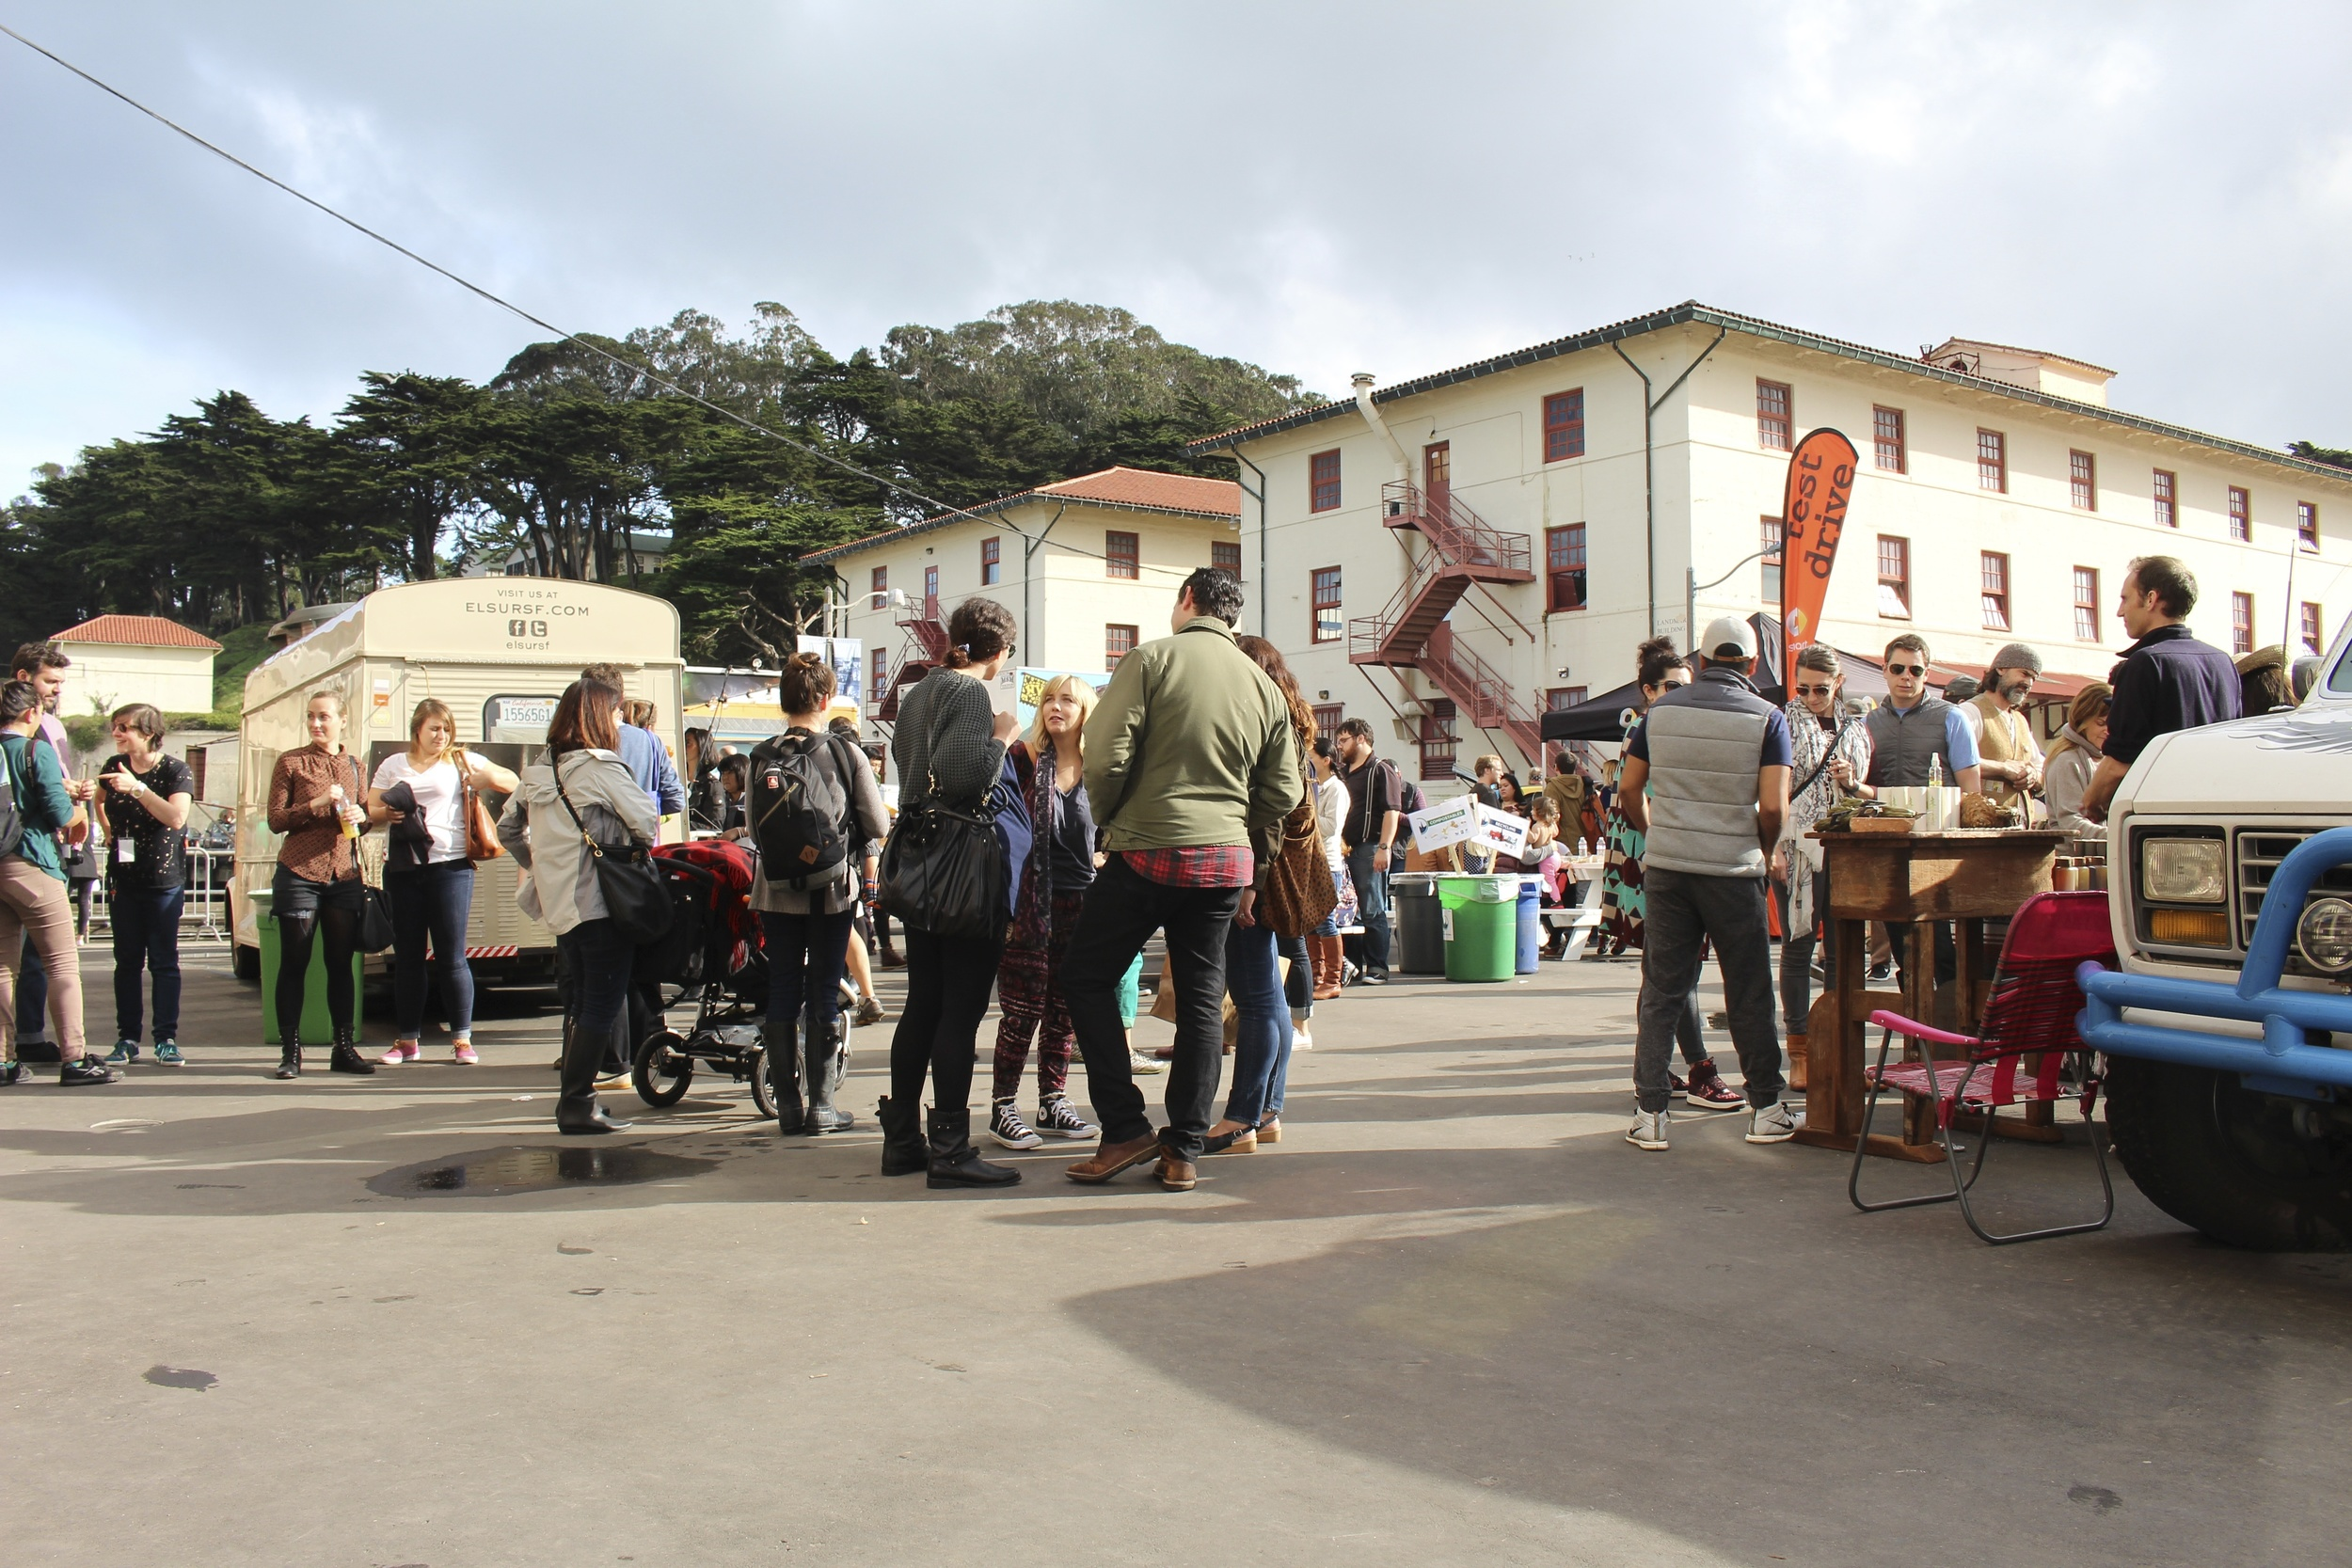 Who doesn't like a good craft fair full of food trucks, beer, and great company. #FortMason